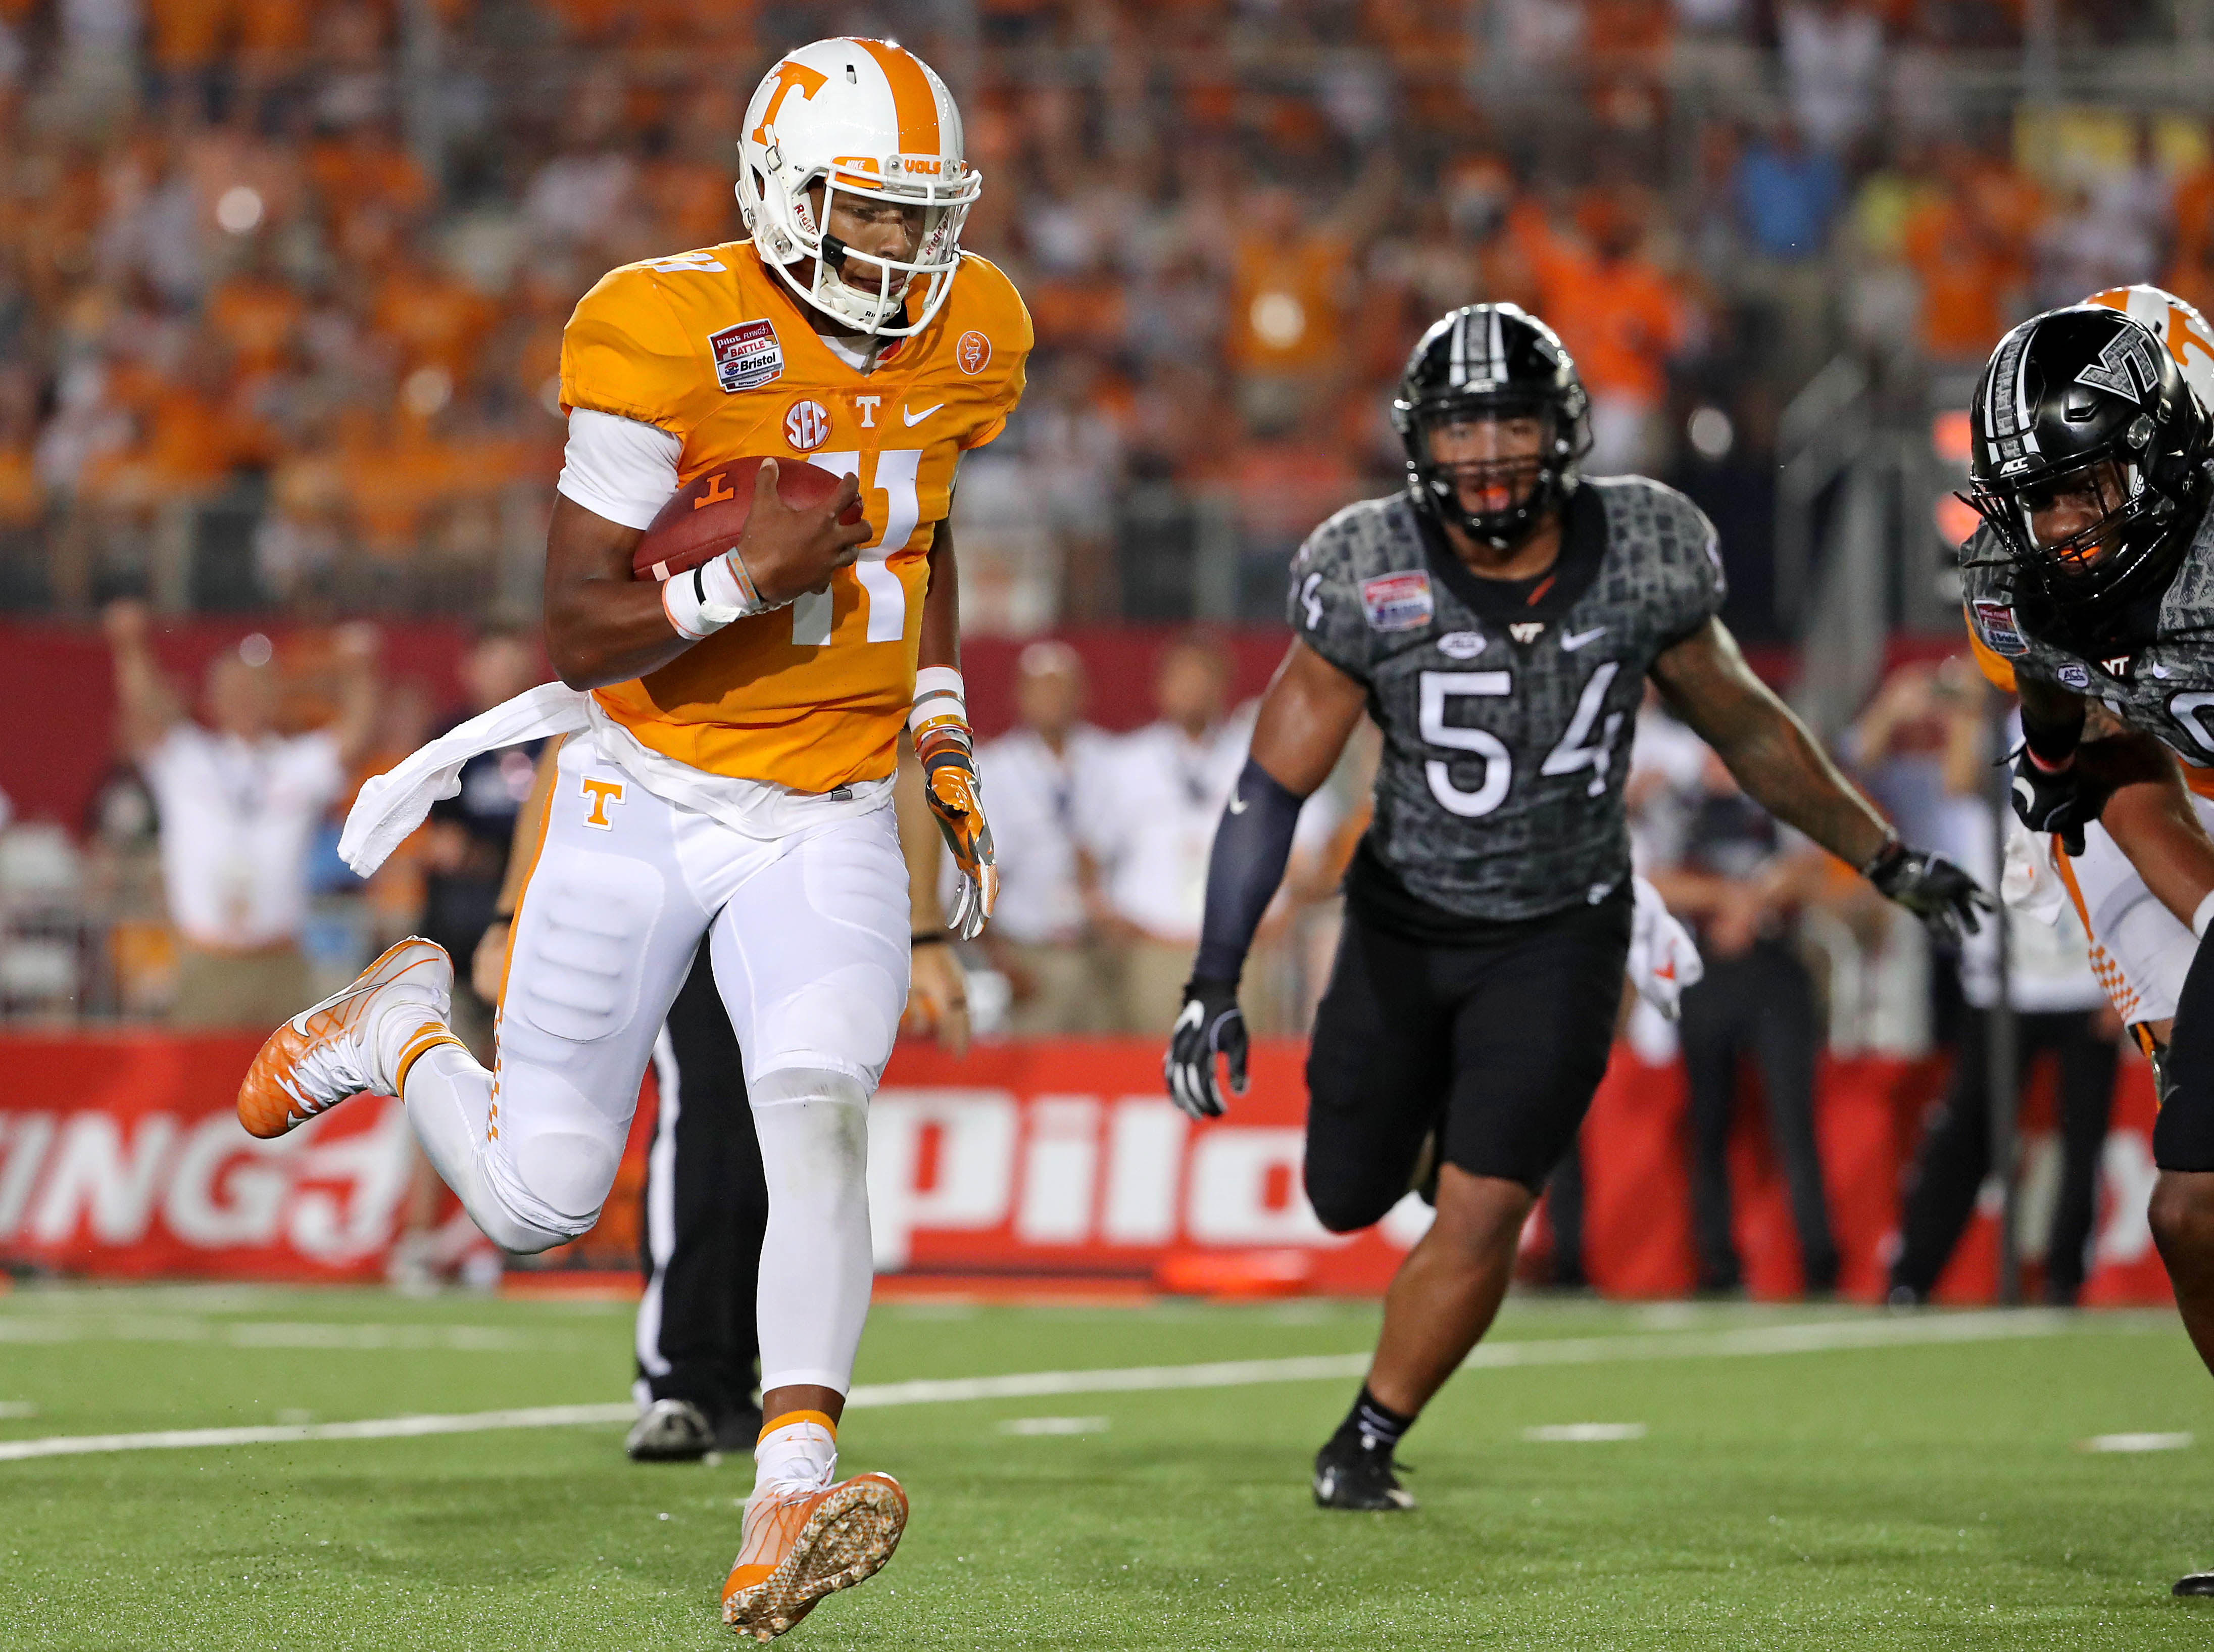 92f68e1fd90 When his pre-snap decision isn't there, Dobbs will sometimes force a bad  throw or make another poor decision because he's ...